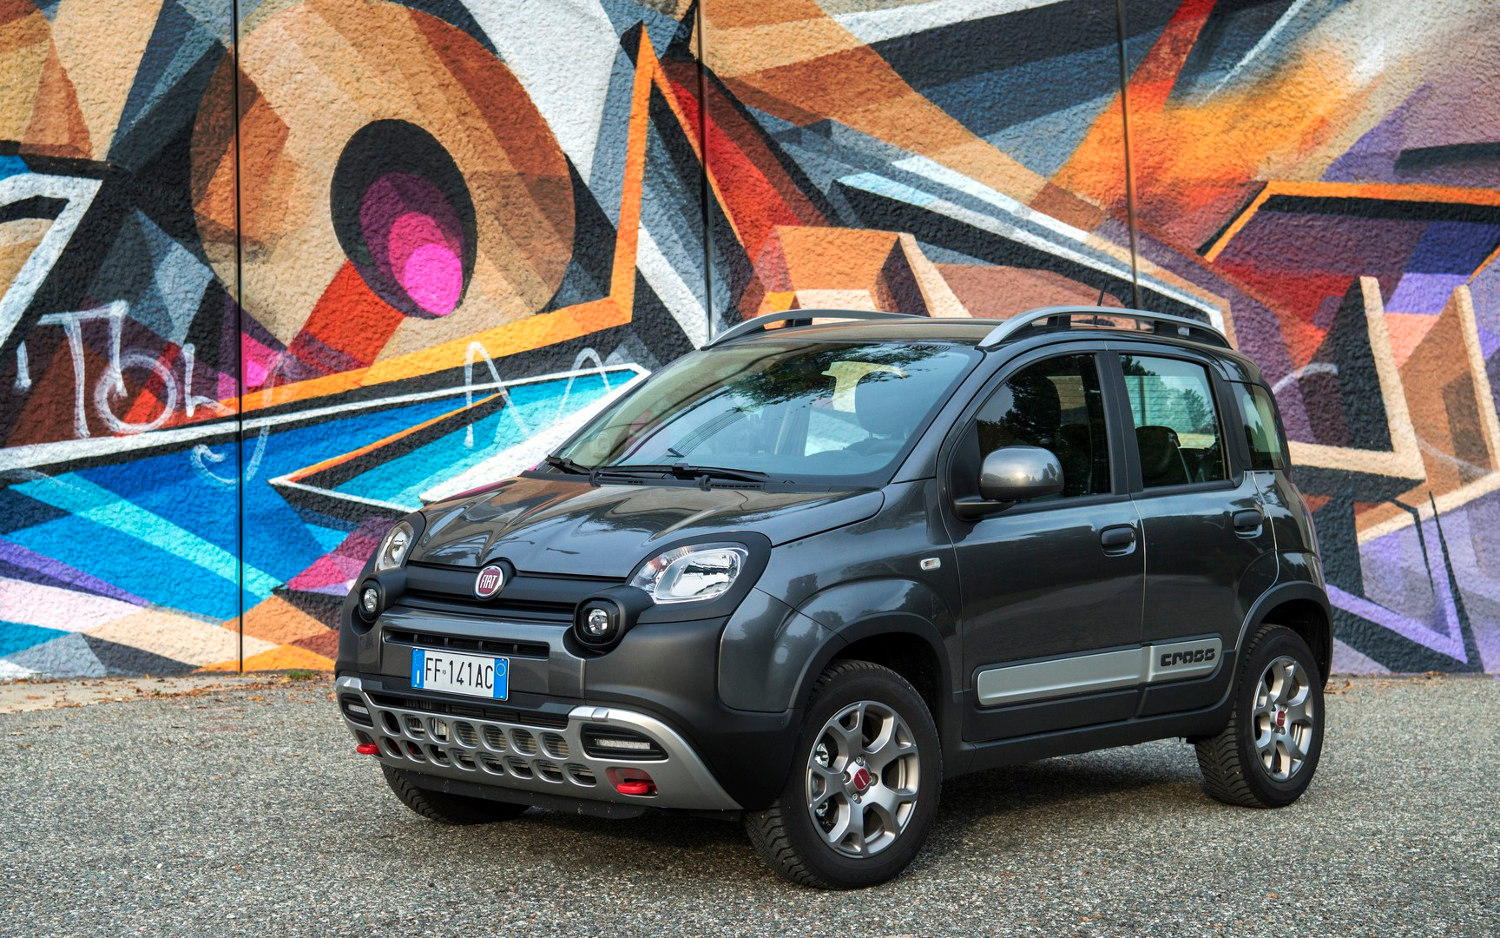 Comparison Suzuki Ignis Glx 2018 Vs Fiat Panda Cross 2018 Suv Drive